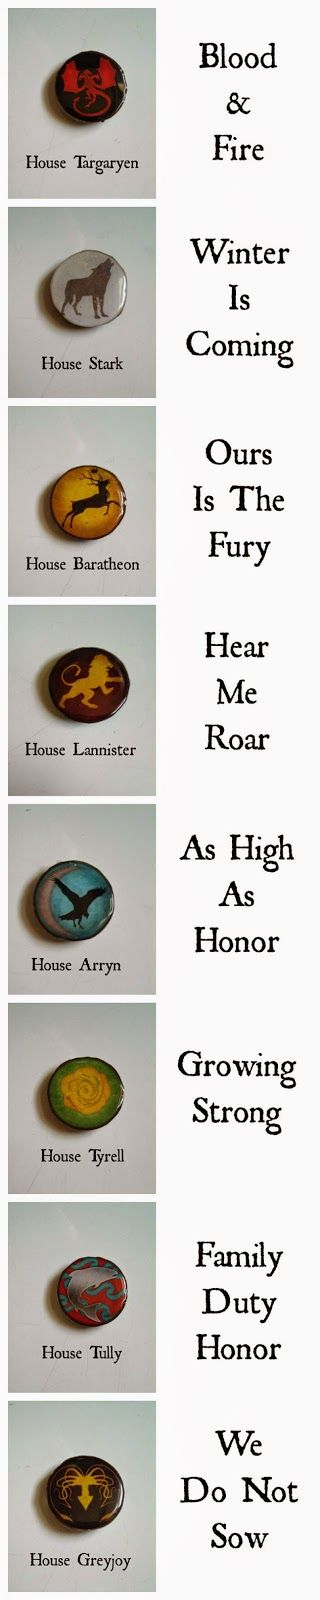 Make Your Own Game Of Thrones House Sigil Magnets Asoiaf Diy Gameofthrones